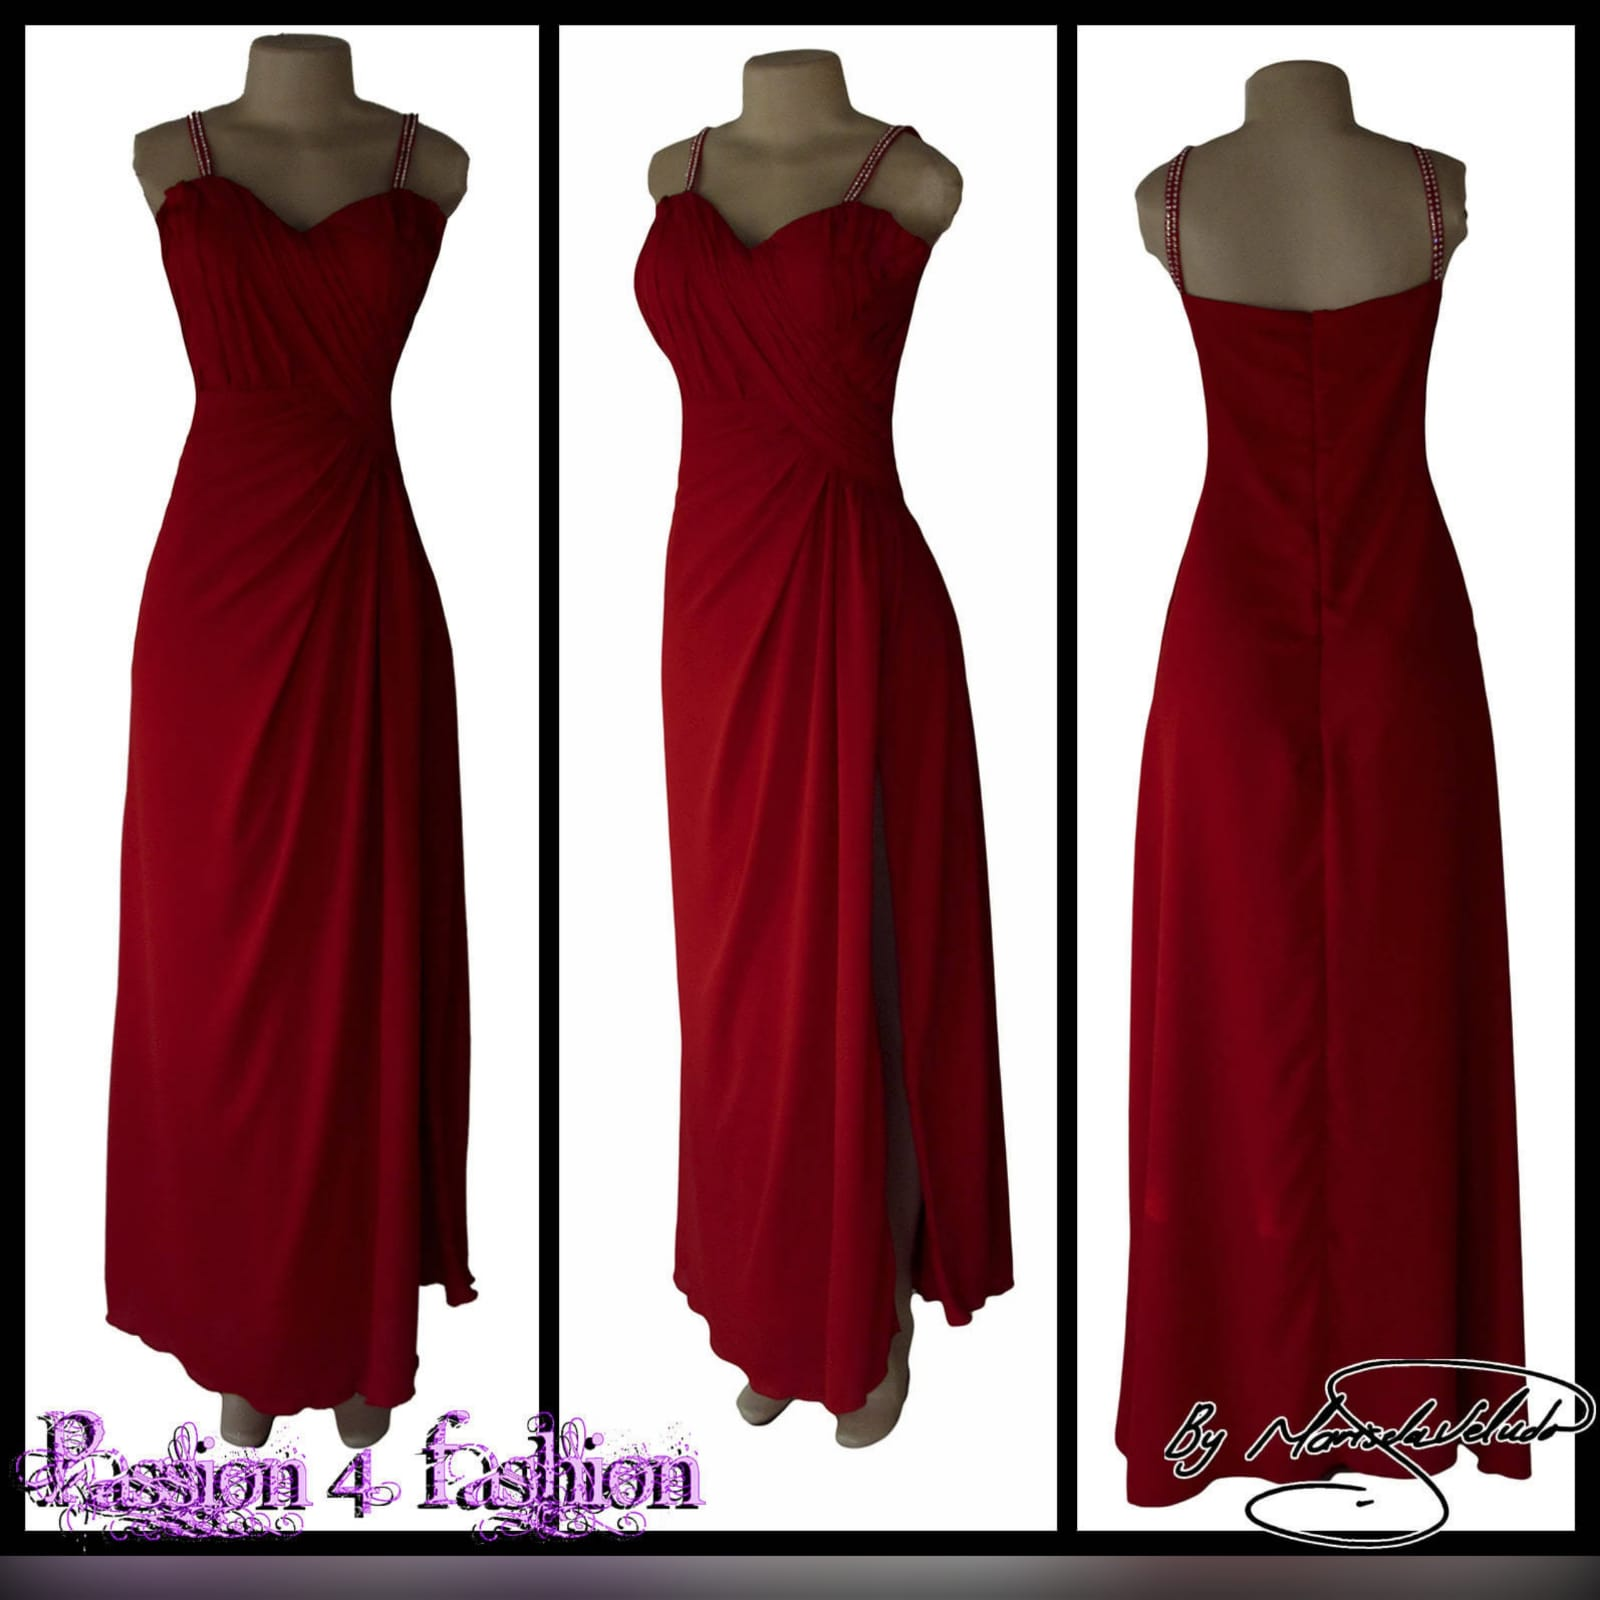 Bright red long crossed slit evening dress 4 bright red long crossed slit evening dress with a ruched bodice and hip. Shoulder straps detailed with diamante.